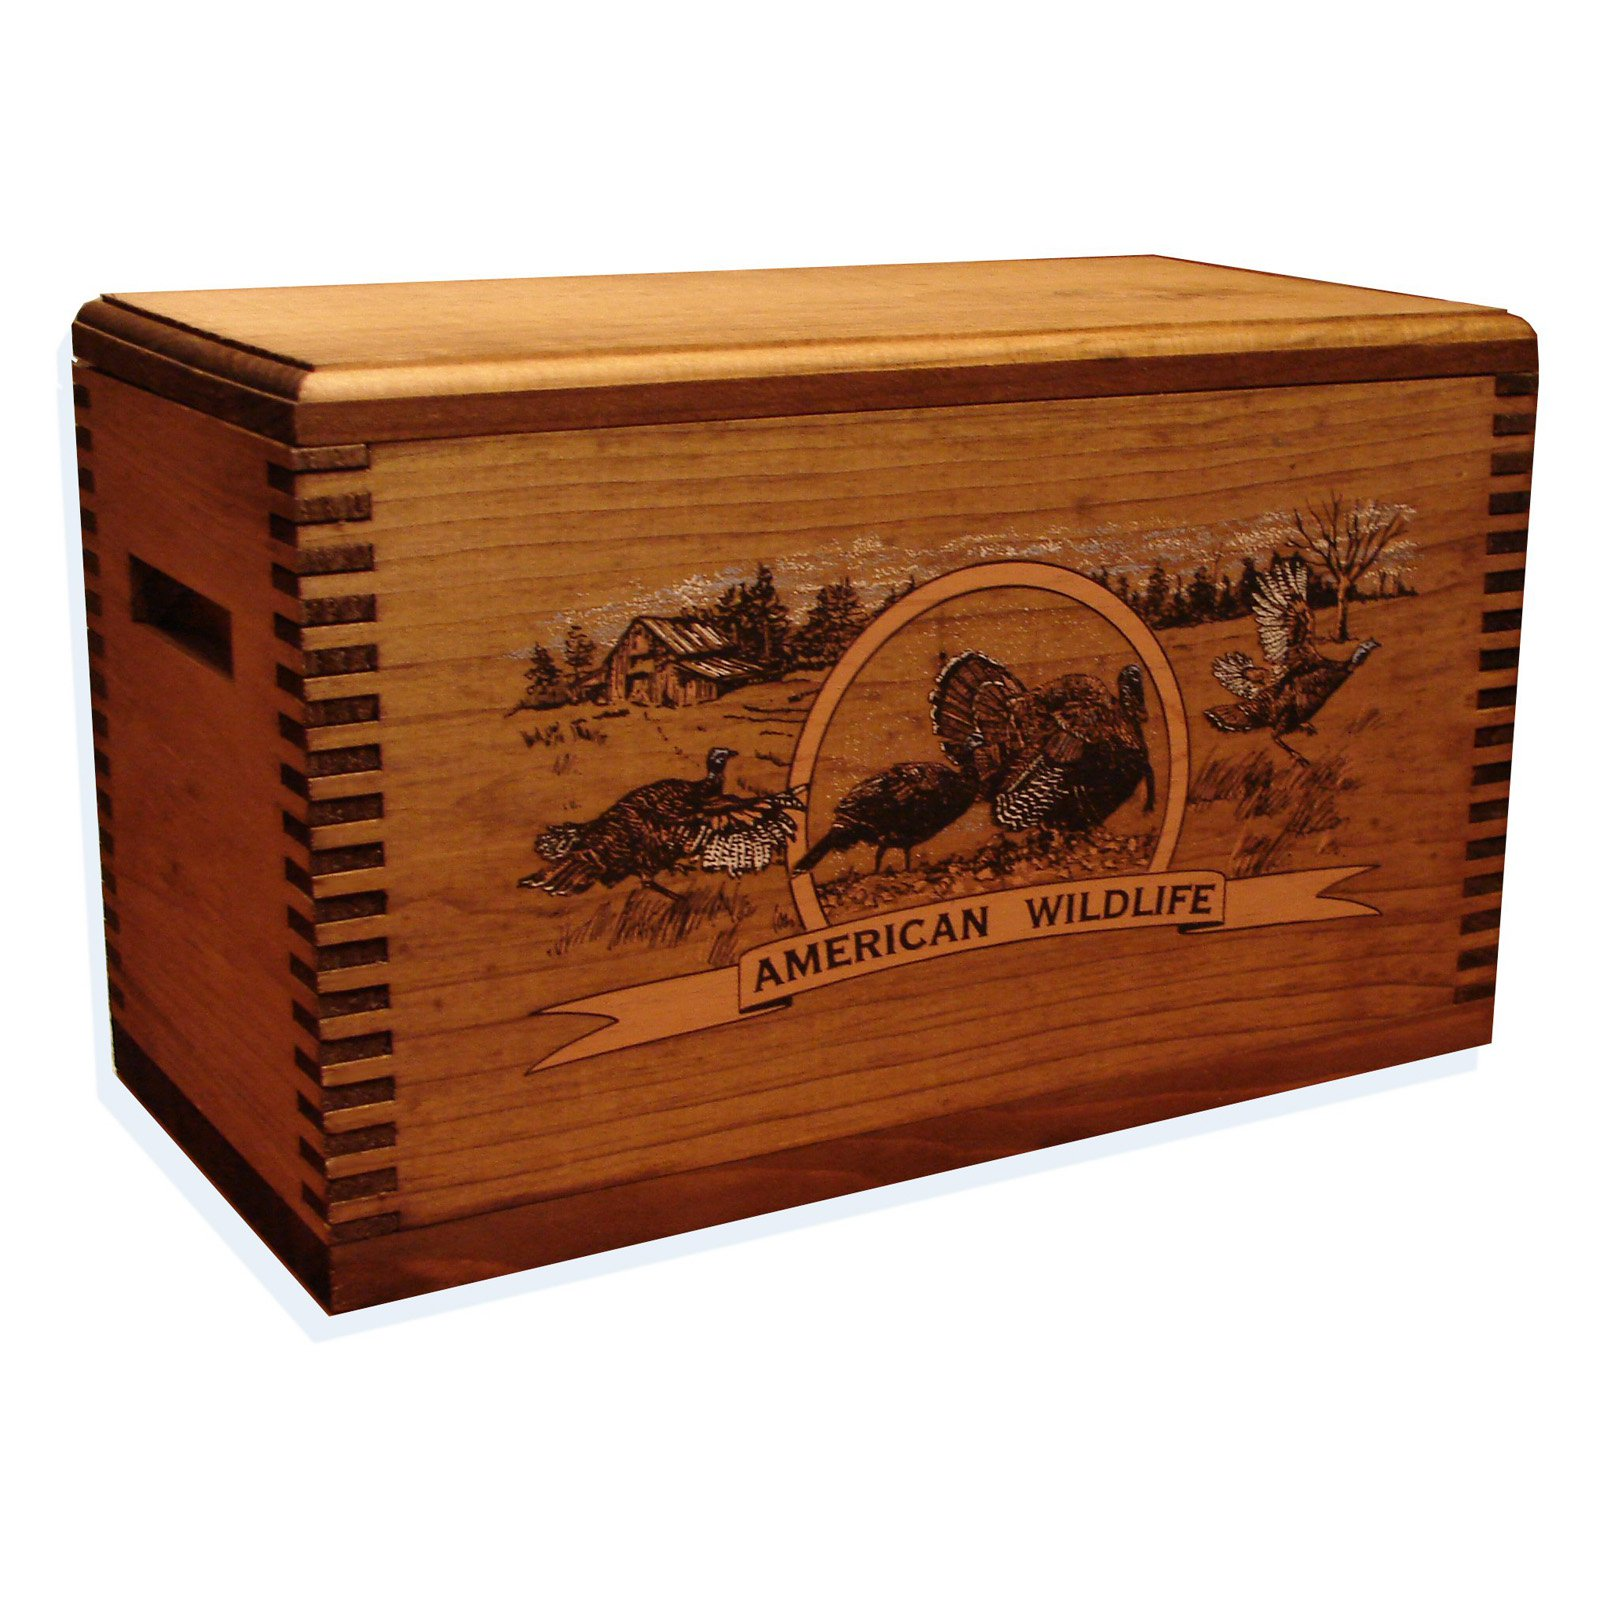 Evans Sports Wooden Accessory Box, Colored Turkey Print